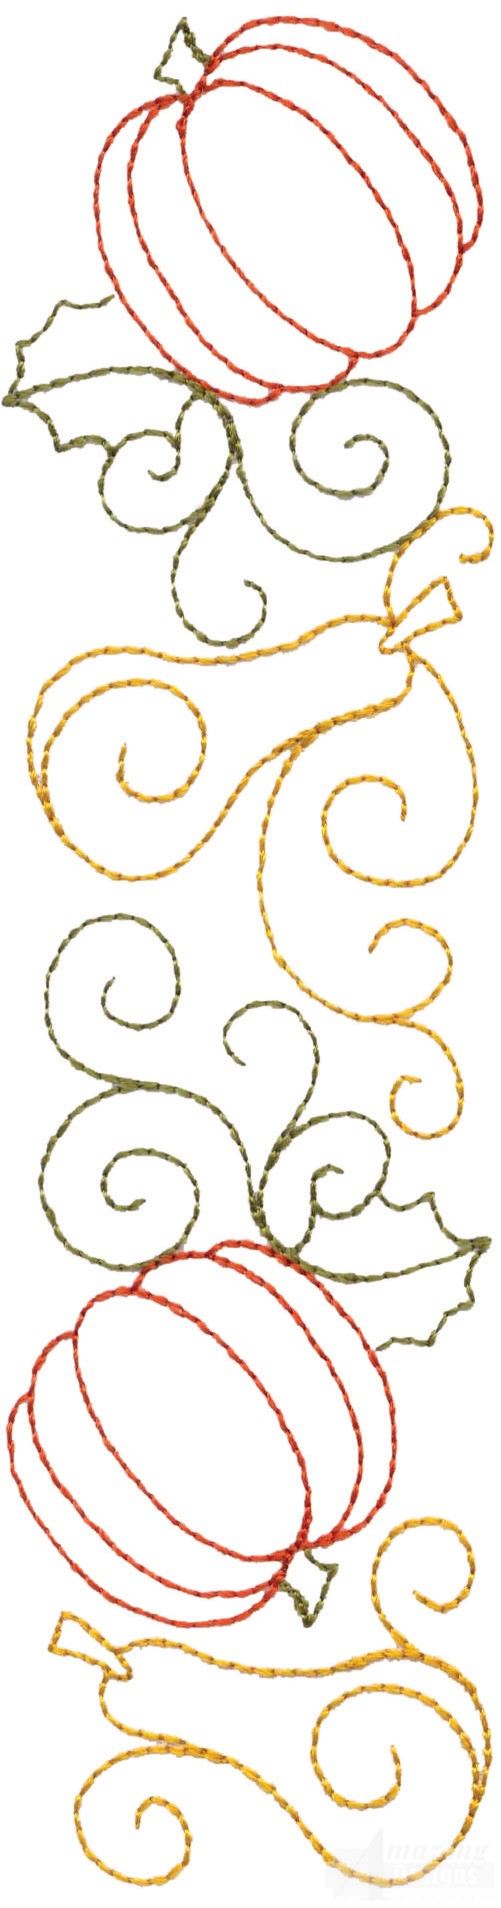 Line Art Embroidery : Pumpkin and squash line embroidery design